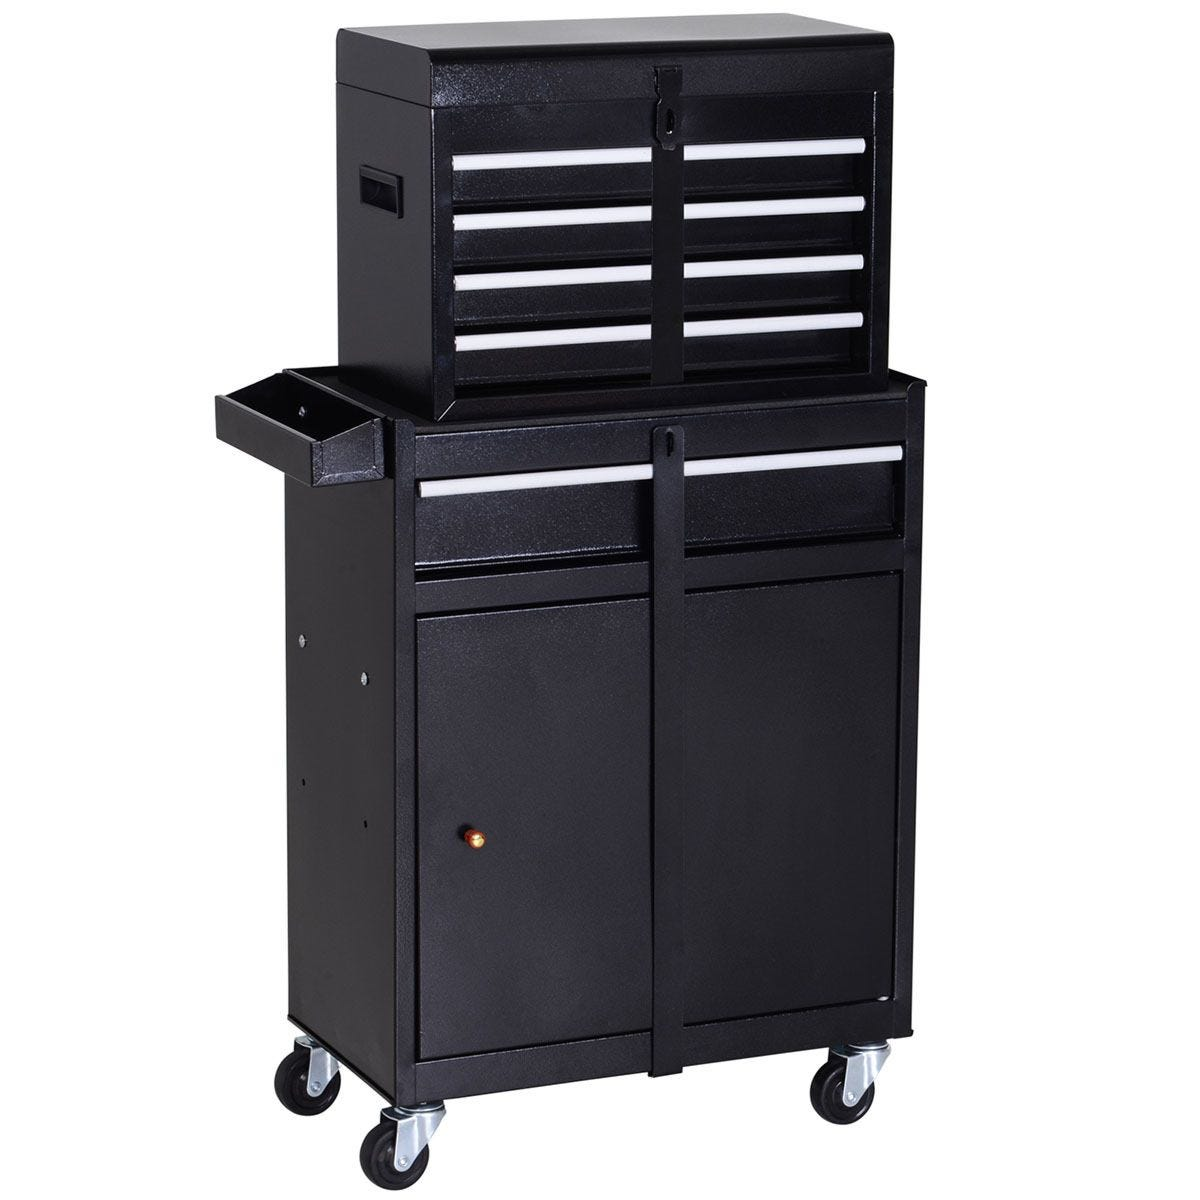 Durhand 2 in 1 Metal Tool Cabinet Storage Box Cabinet with 5 Drawers Pegboard Chest - Black & Brown